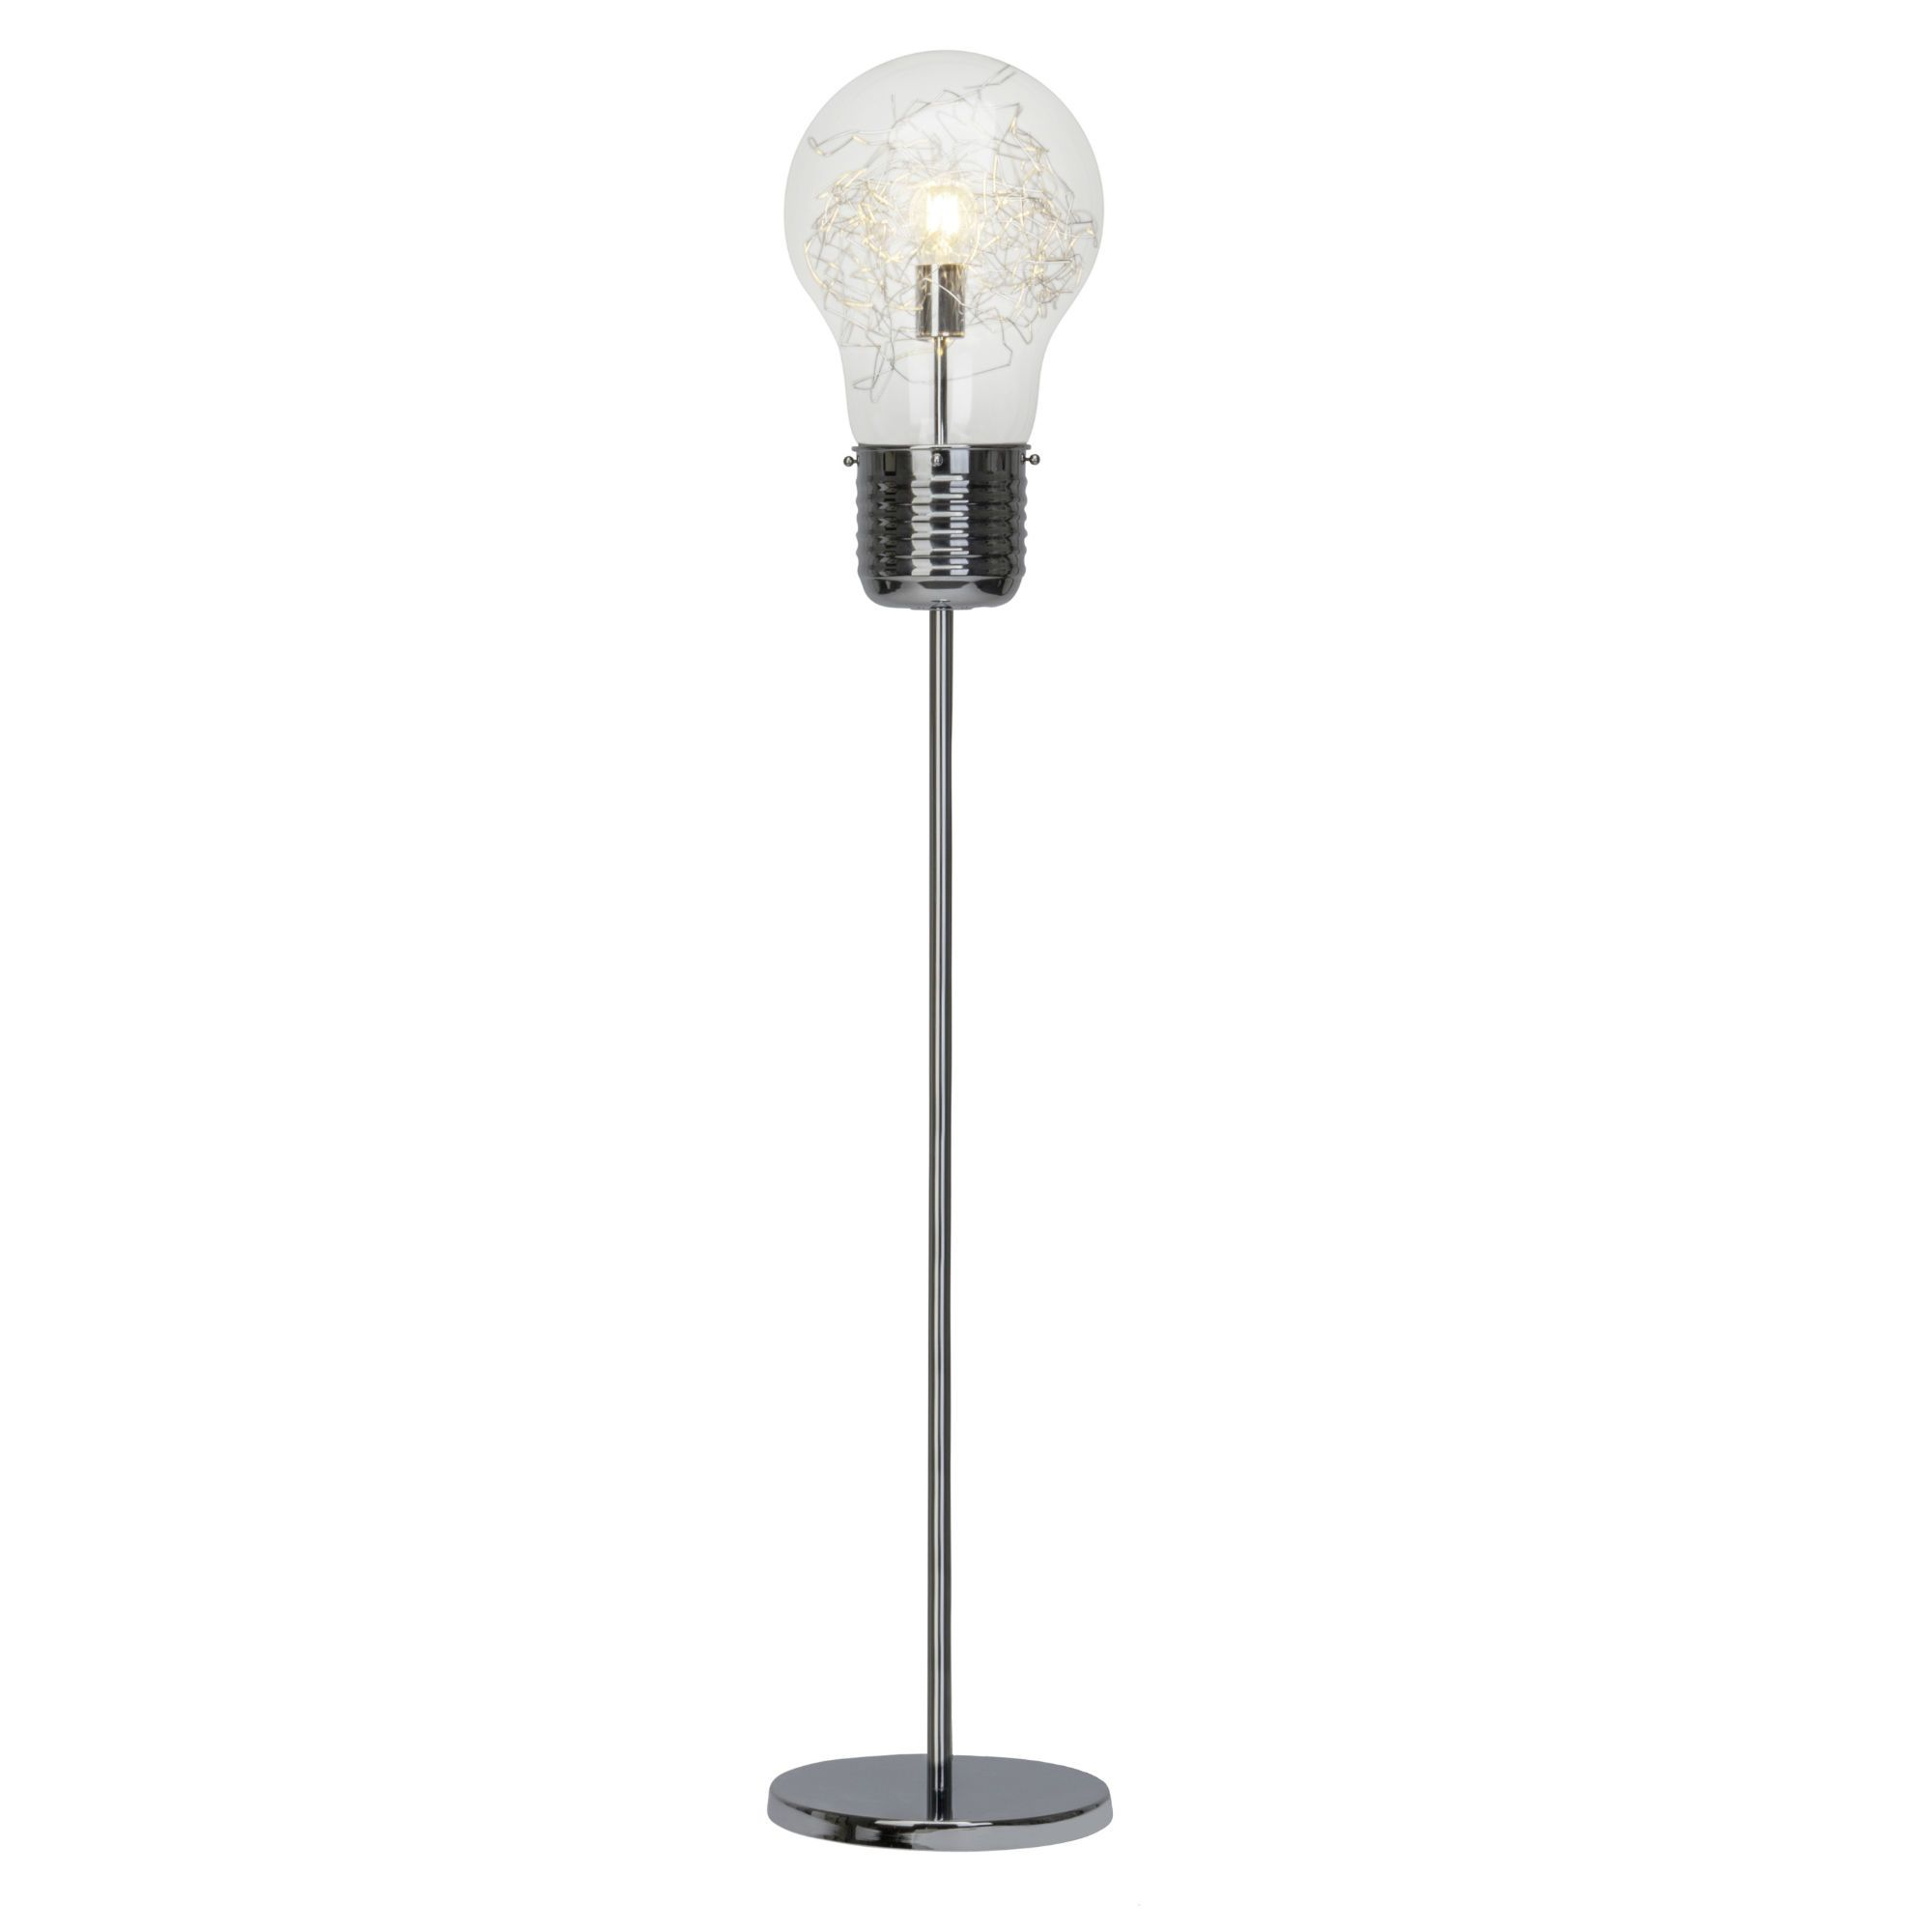 Lampadaire Chrome Bulb Lampadaire Chrome Et Verre H150cm Brilliant